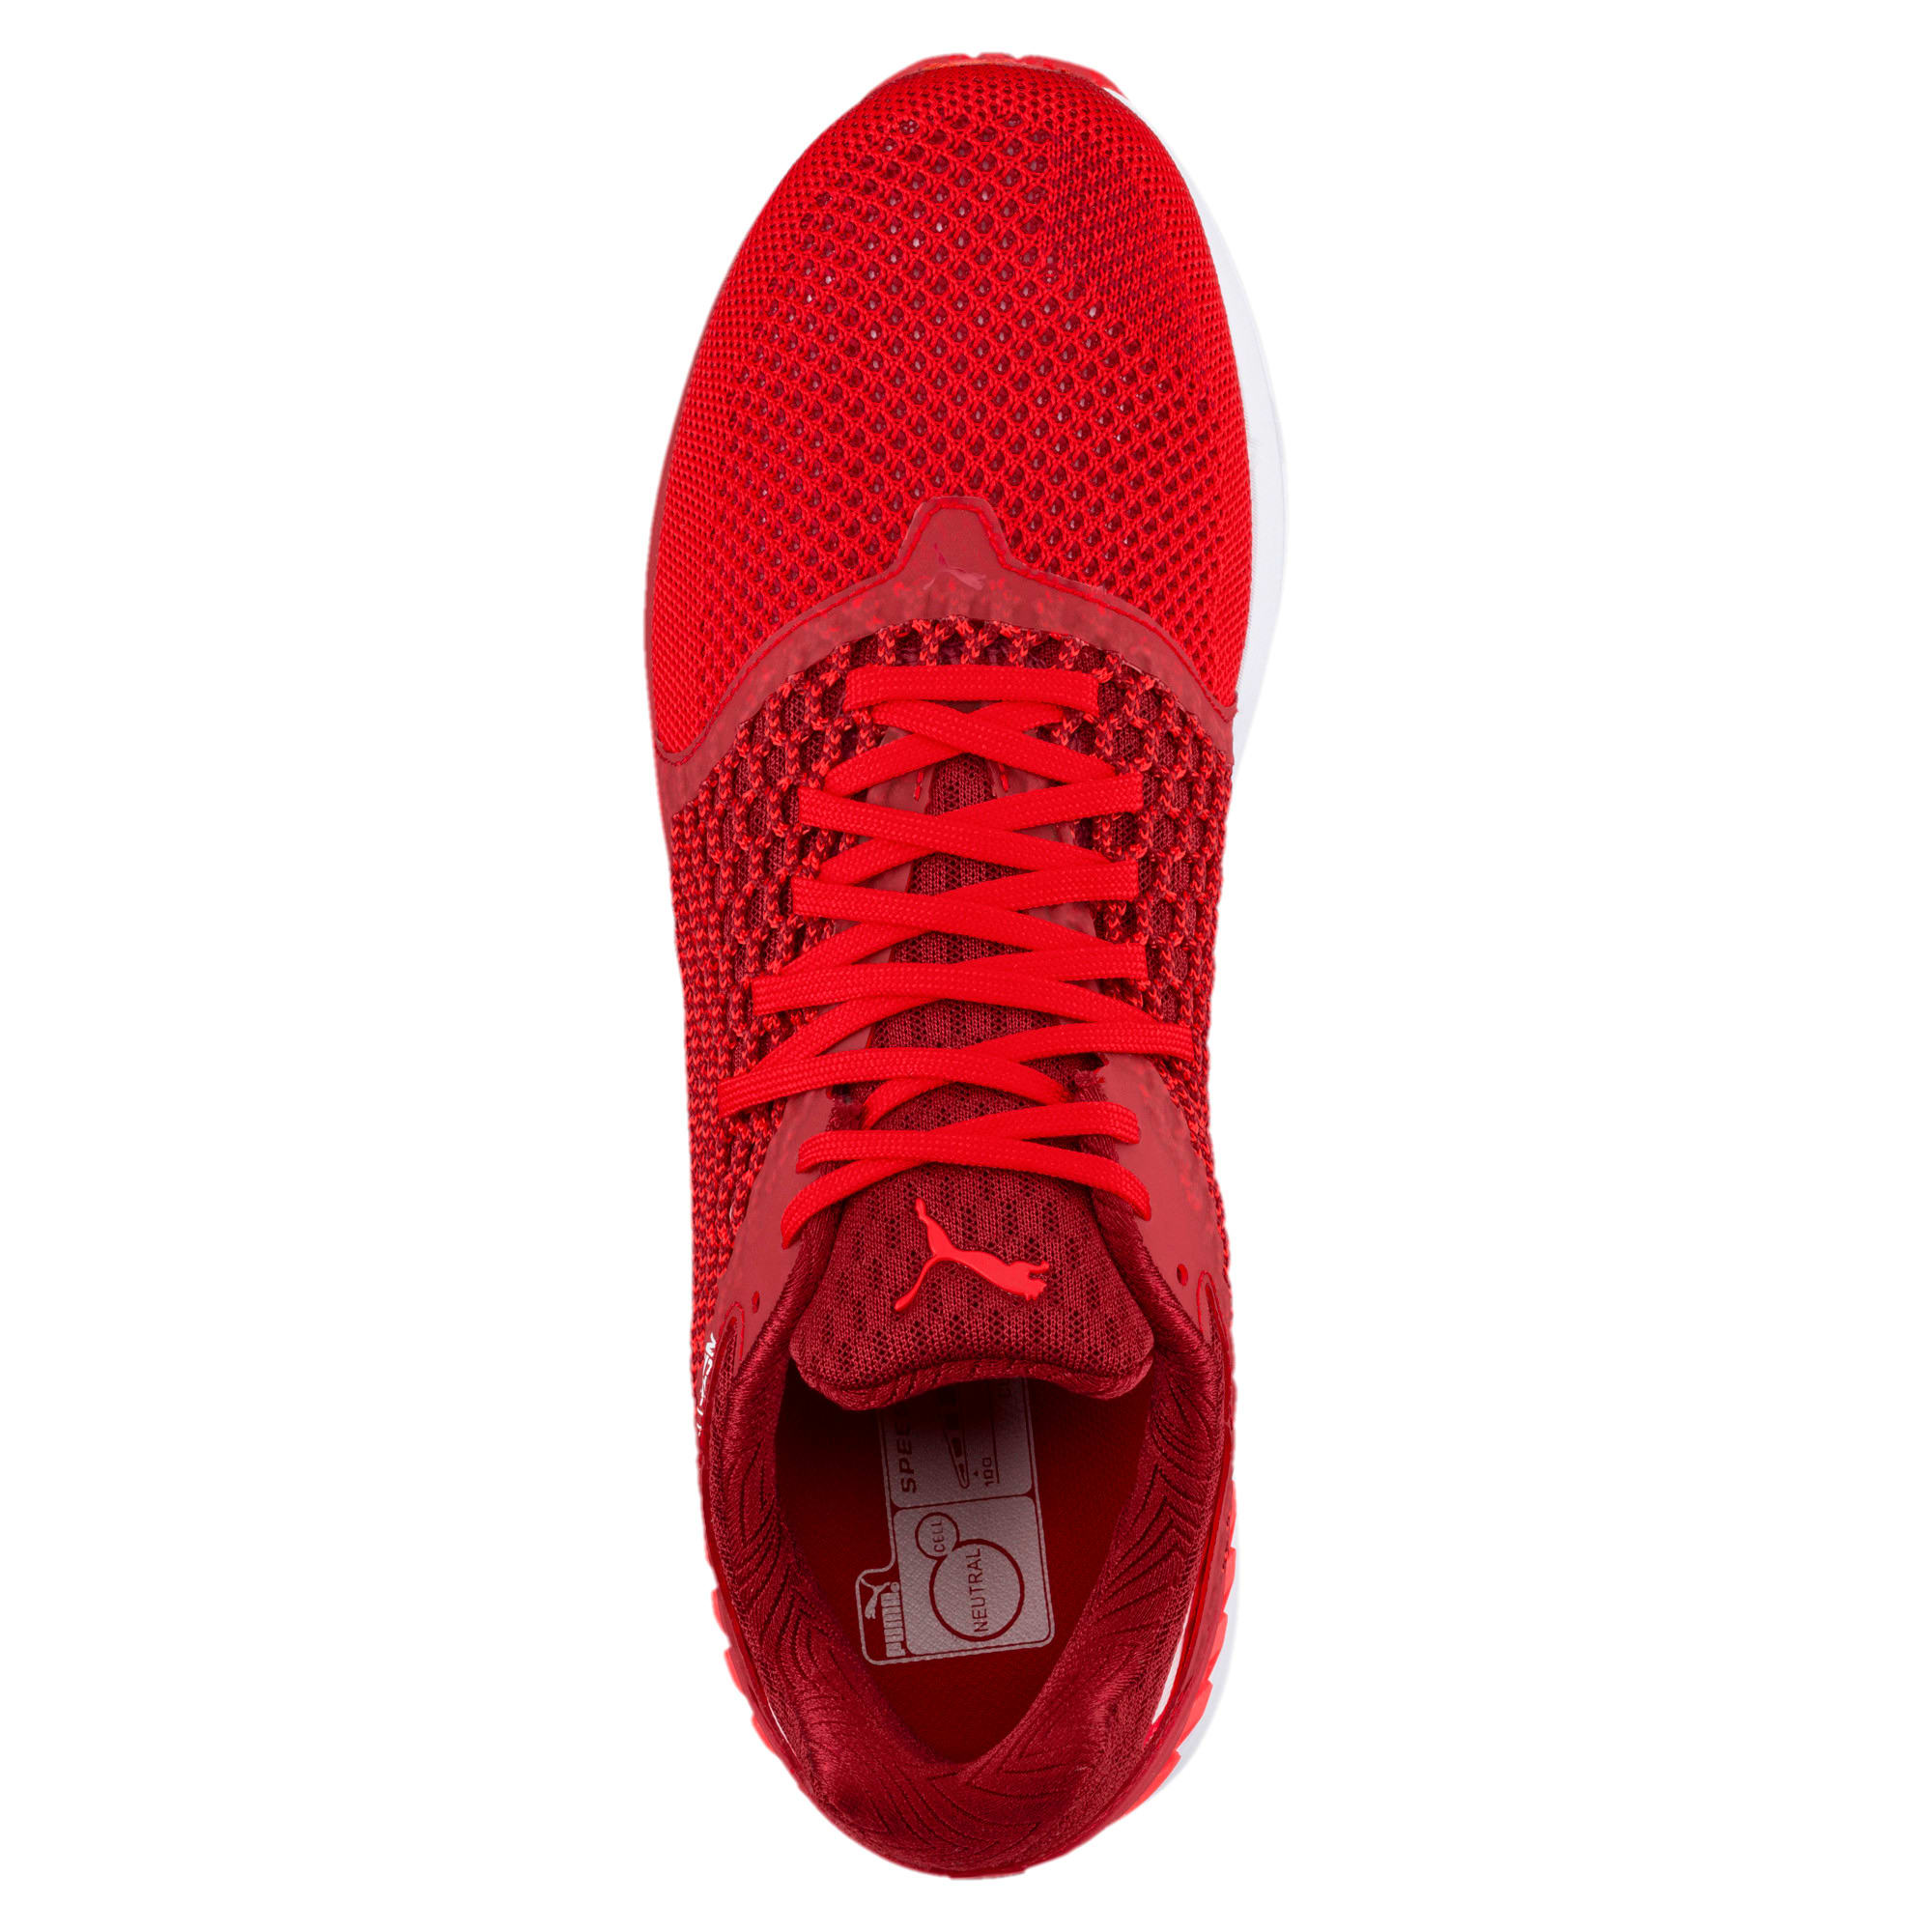 Thumbnail 3 of Speed 600 IGNITE 3 Men's Running Shoes, Scarlet-Red Dahlia-White, medium-IND